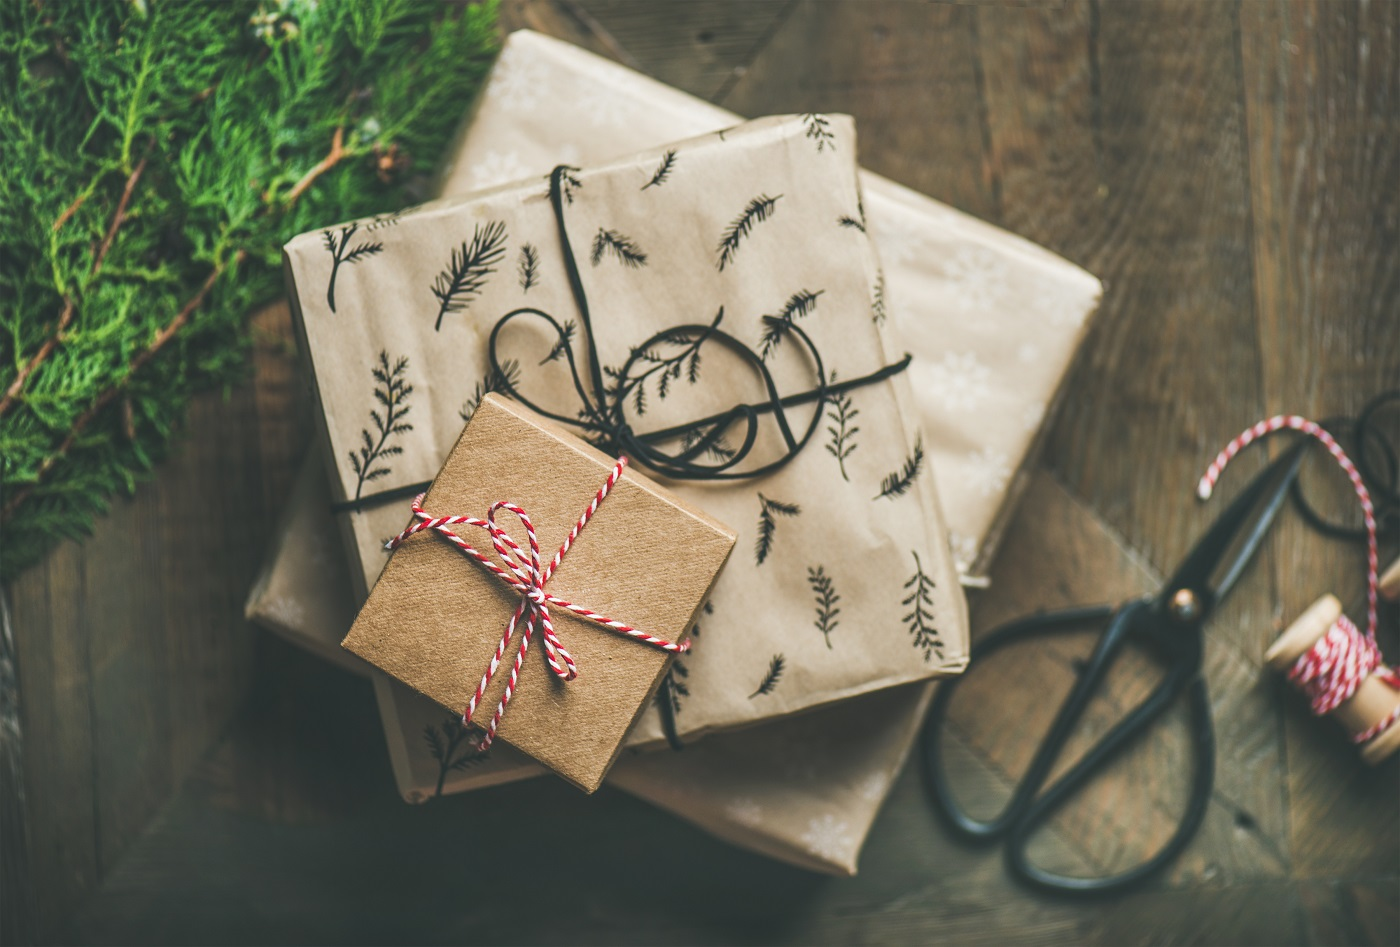 10 Last Minute Gift Ideas for Entrepreneurs